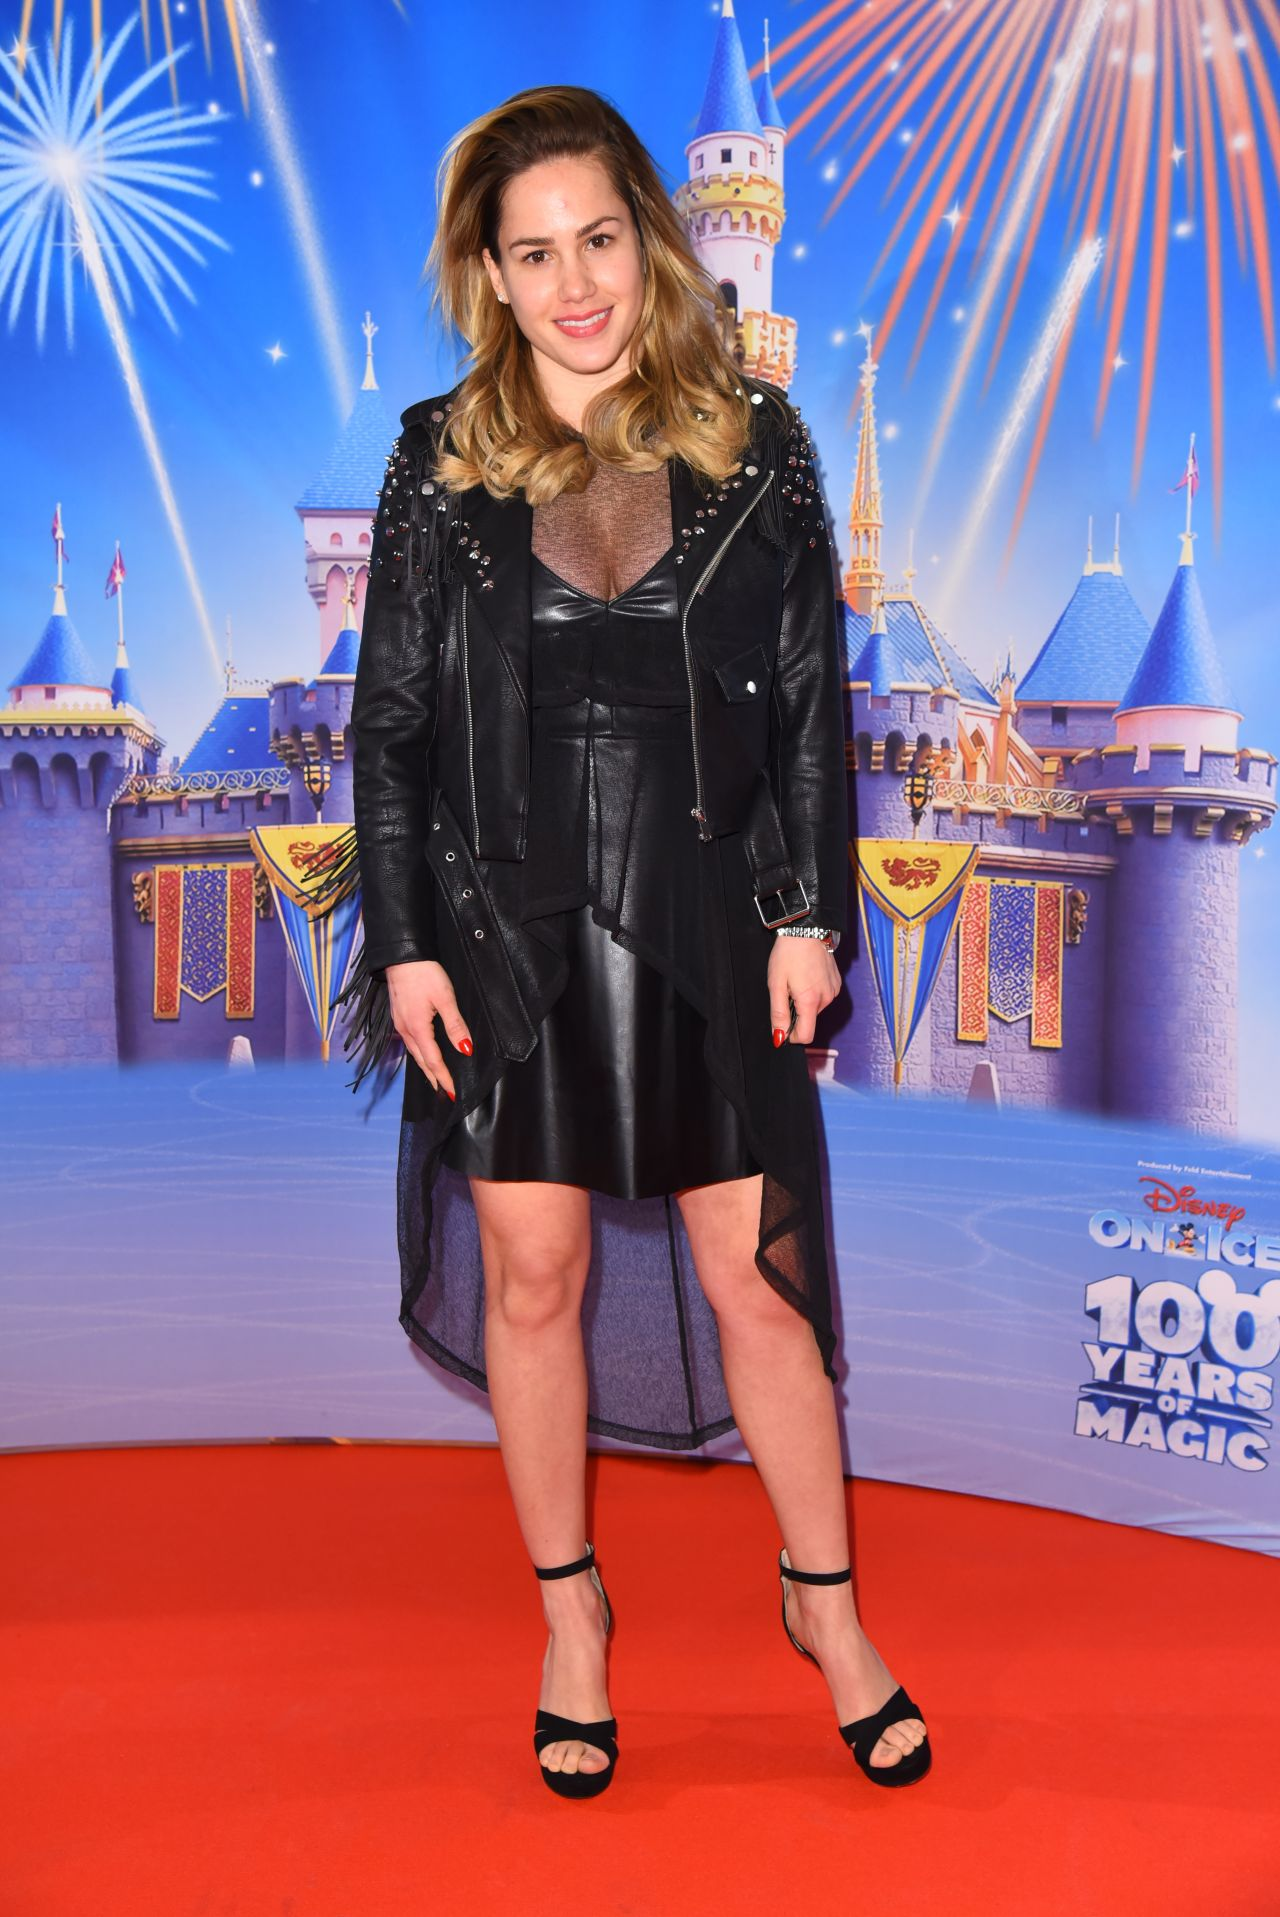 Angelina Heger – 'Disney on ice' Premiere in Velodrom, Berlin 3/2/ 2017